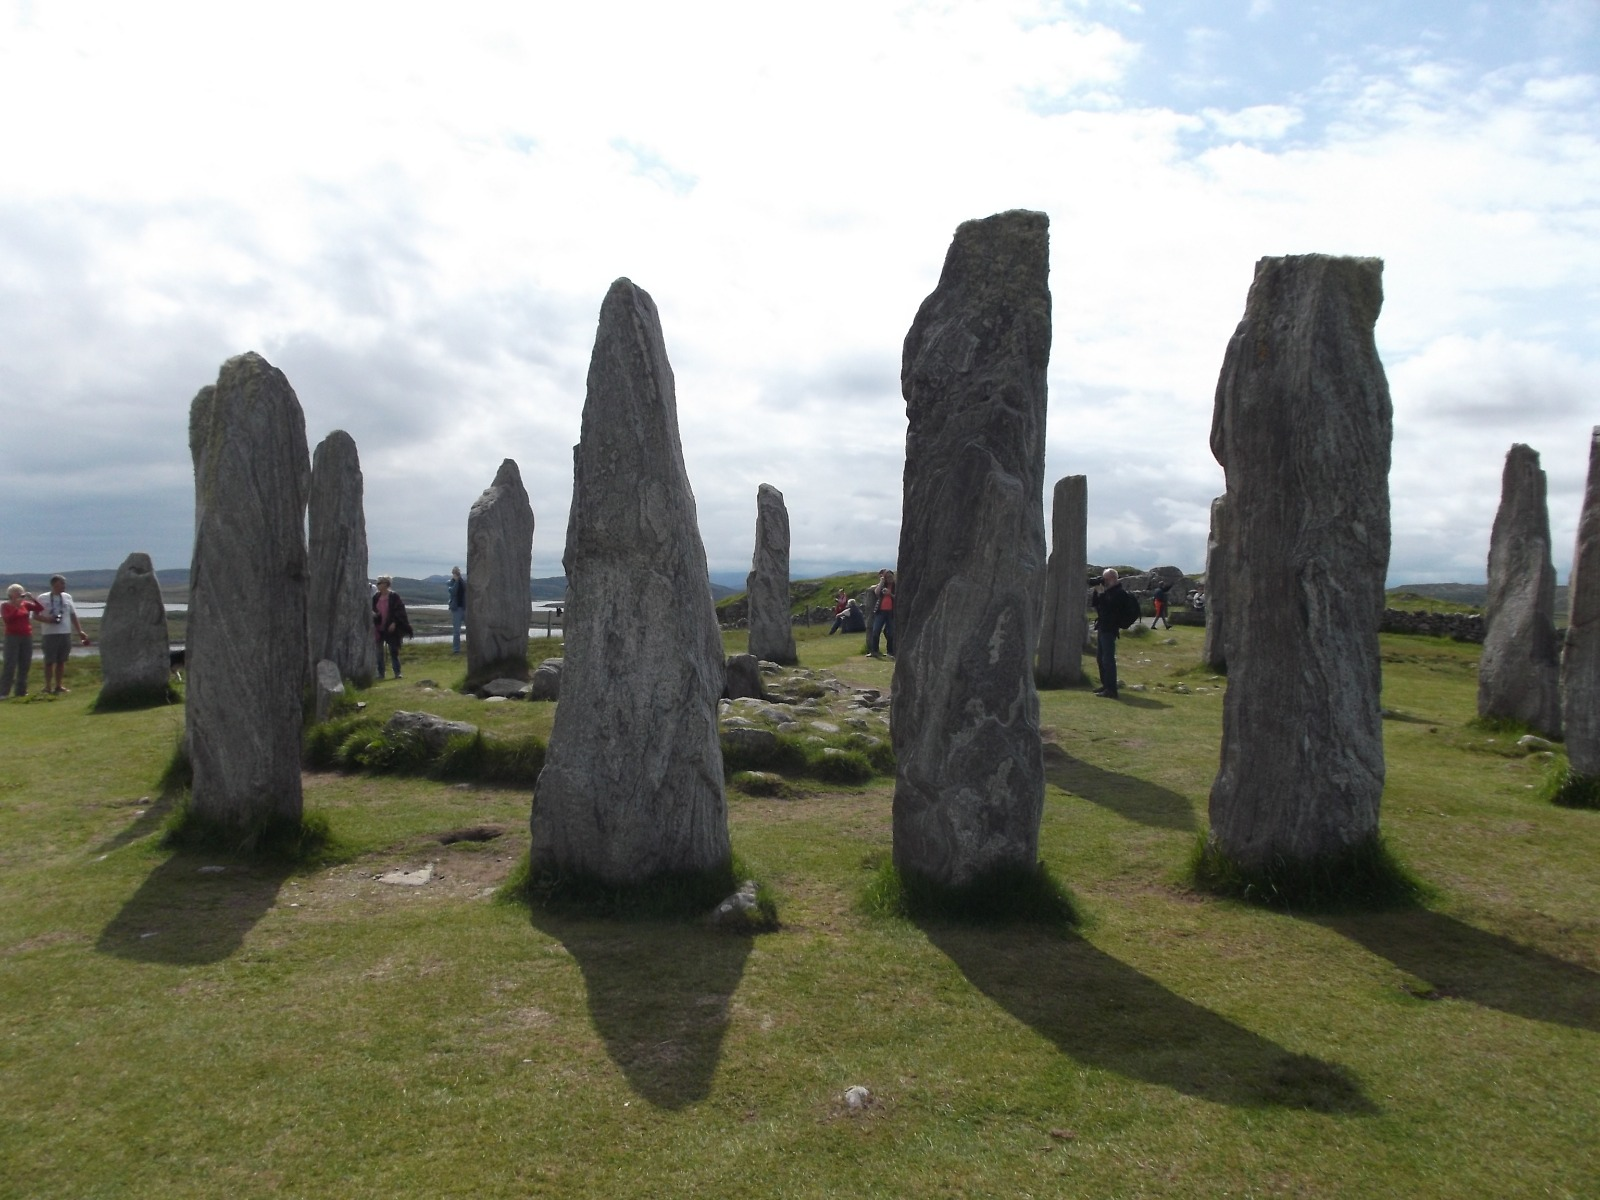 Standing Stones of Callanish, Schottland, Hebrideninsel Lewis